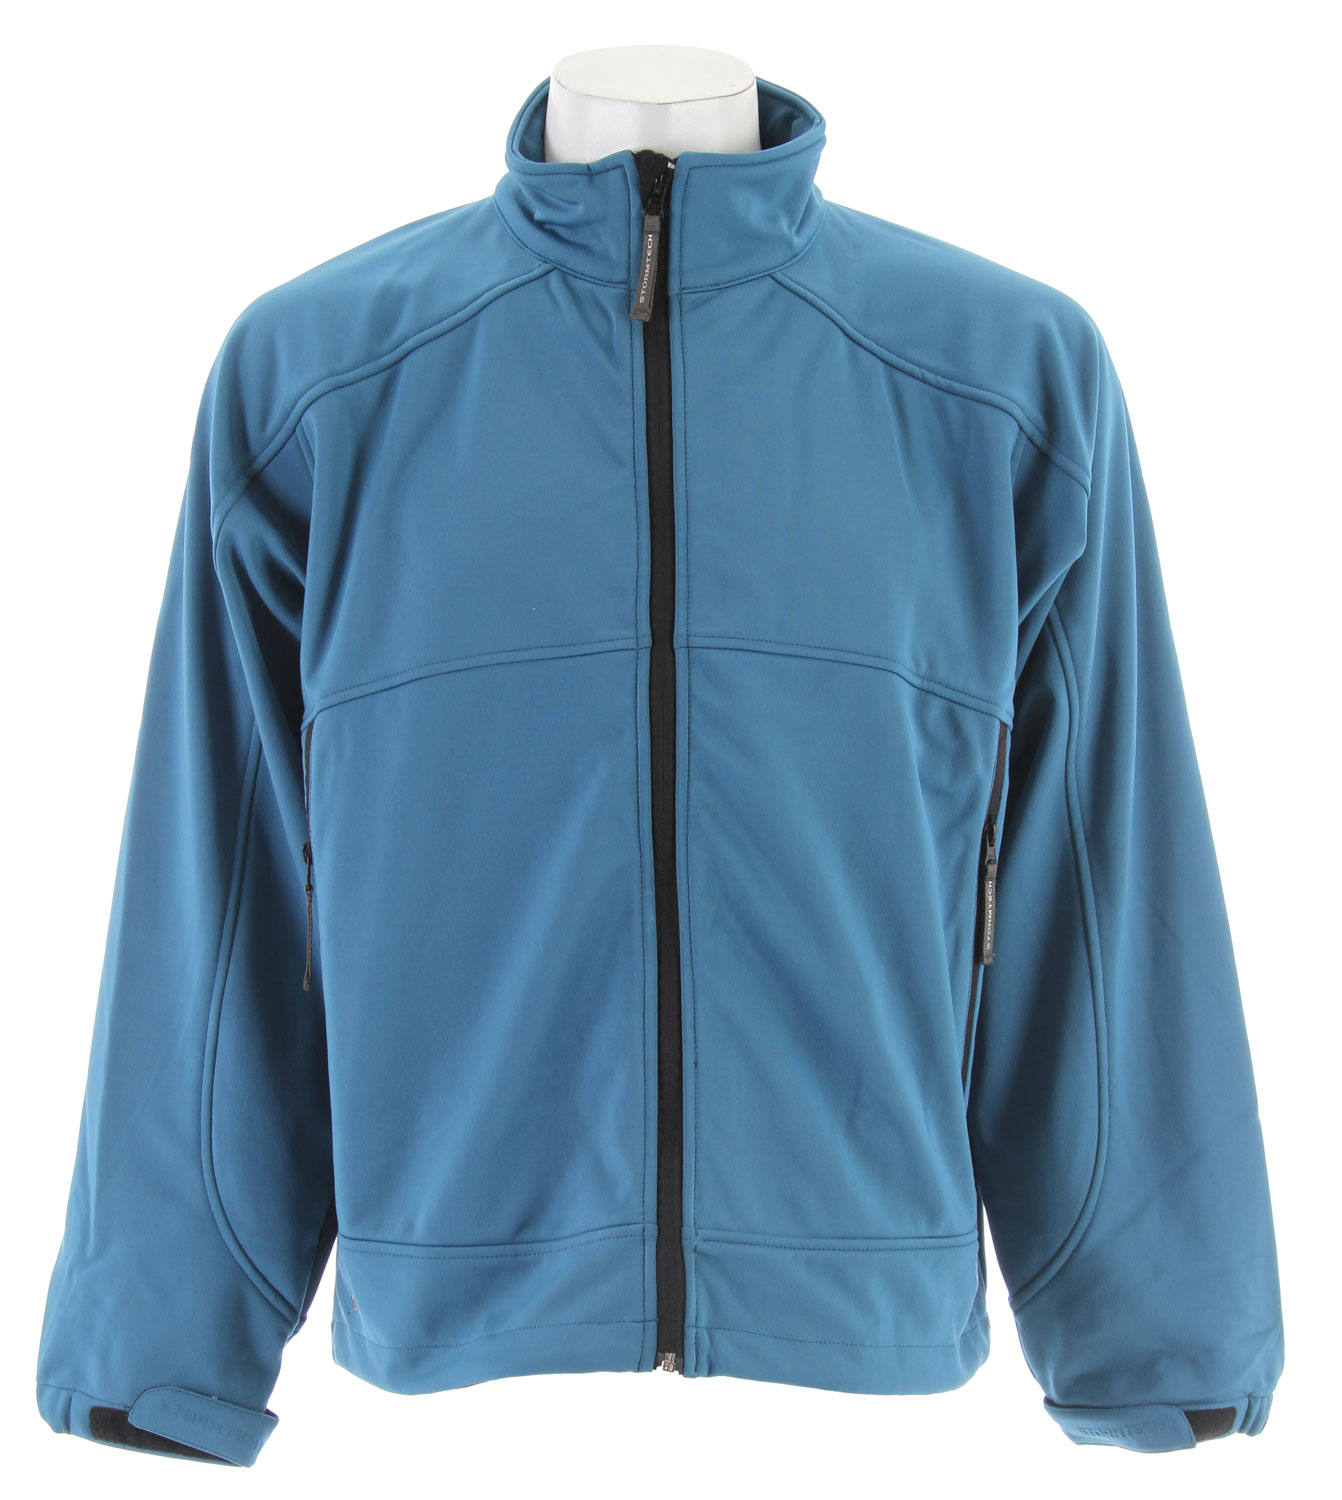 Highly waterproof and breathable, the Cirrus Bonded Shell will have you smiling all the way to the top, even when the mercury drops. Look good with clean styling and feel good with added stretch for mobility.Key Features for the Stormtech Cirrus H2X Bonded Shell Jacket: 5,000mm Waterproof 3,000g Breathability H2X 5,000mm Waterproof / 3,000gm2 Breathable Technology Bonded Micro-Polyester Shell Waterproof Zippers with Puller Garage Laser-Cut Welded Adjustable Cuffs Adjustable Single-Hand Draw Cord at Waist Inside Facing Draft Flap - $35.95